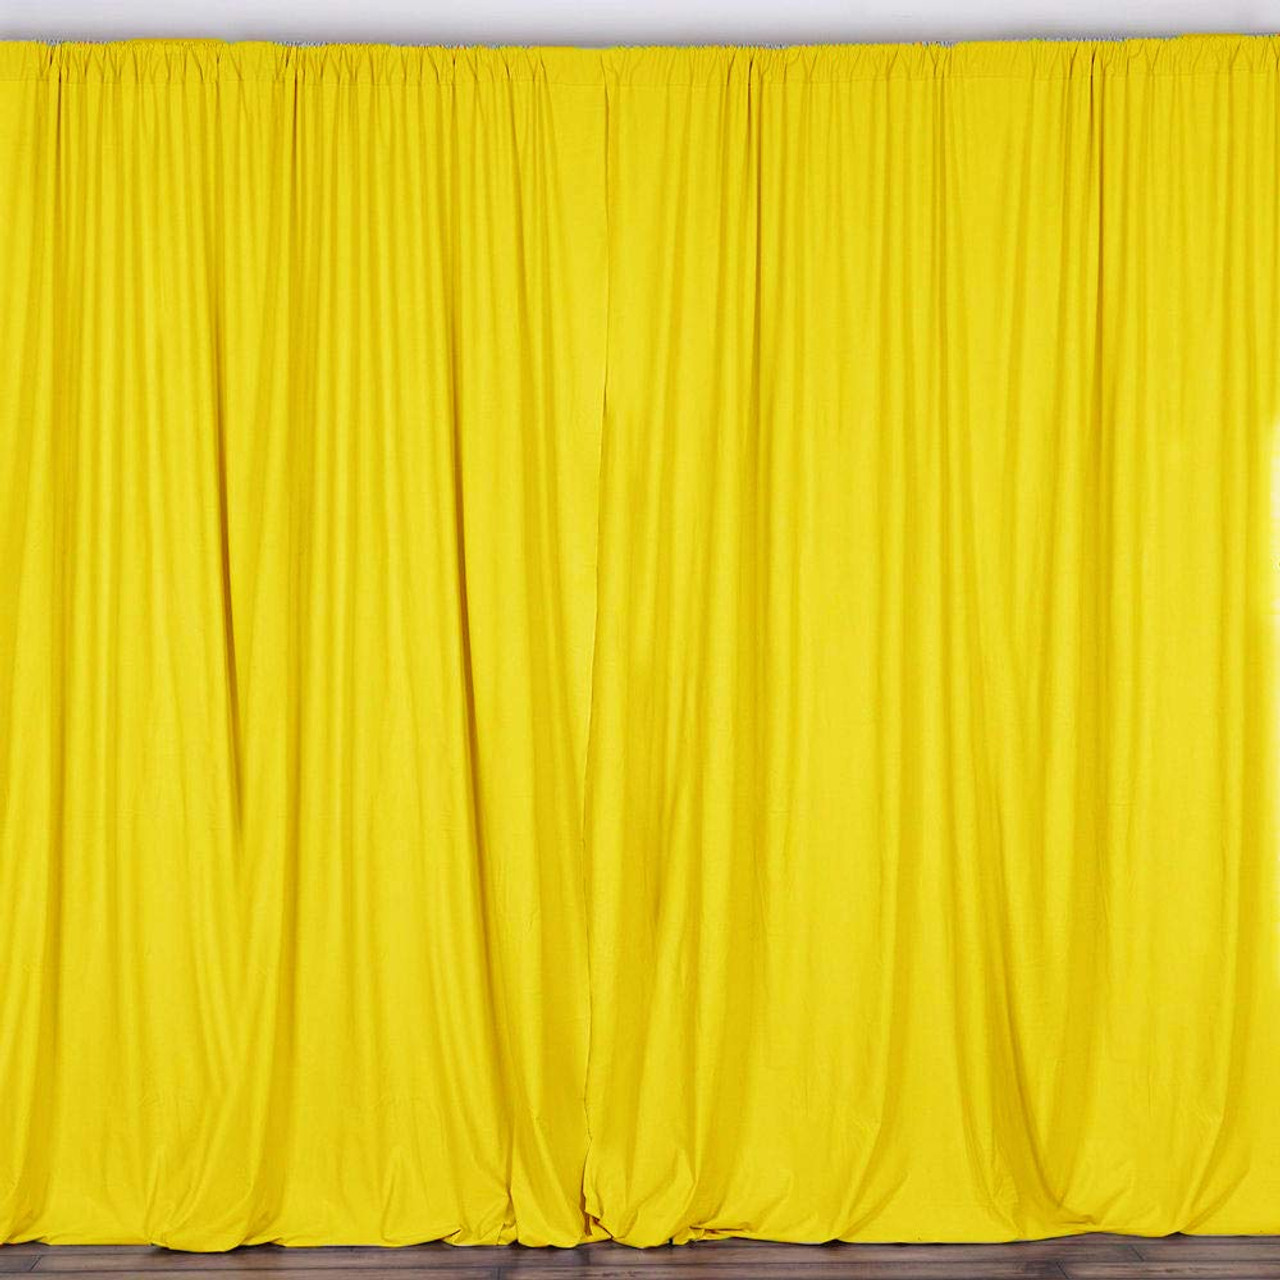 2 Pack 10 Feet Polyester Backdrop Drapes Curtains Panels With Rod Pockets Wedding Ceremony Party Home Window Decorations Lemon Yellow Ak Trading Co